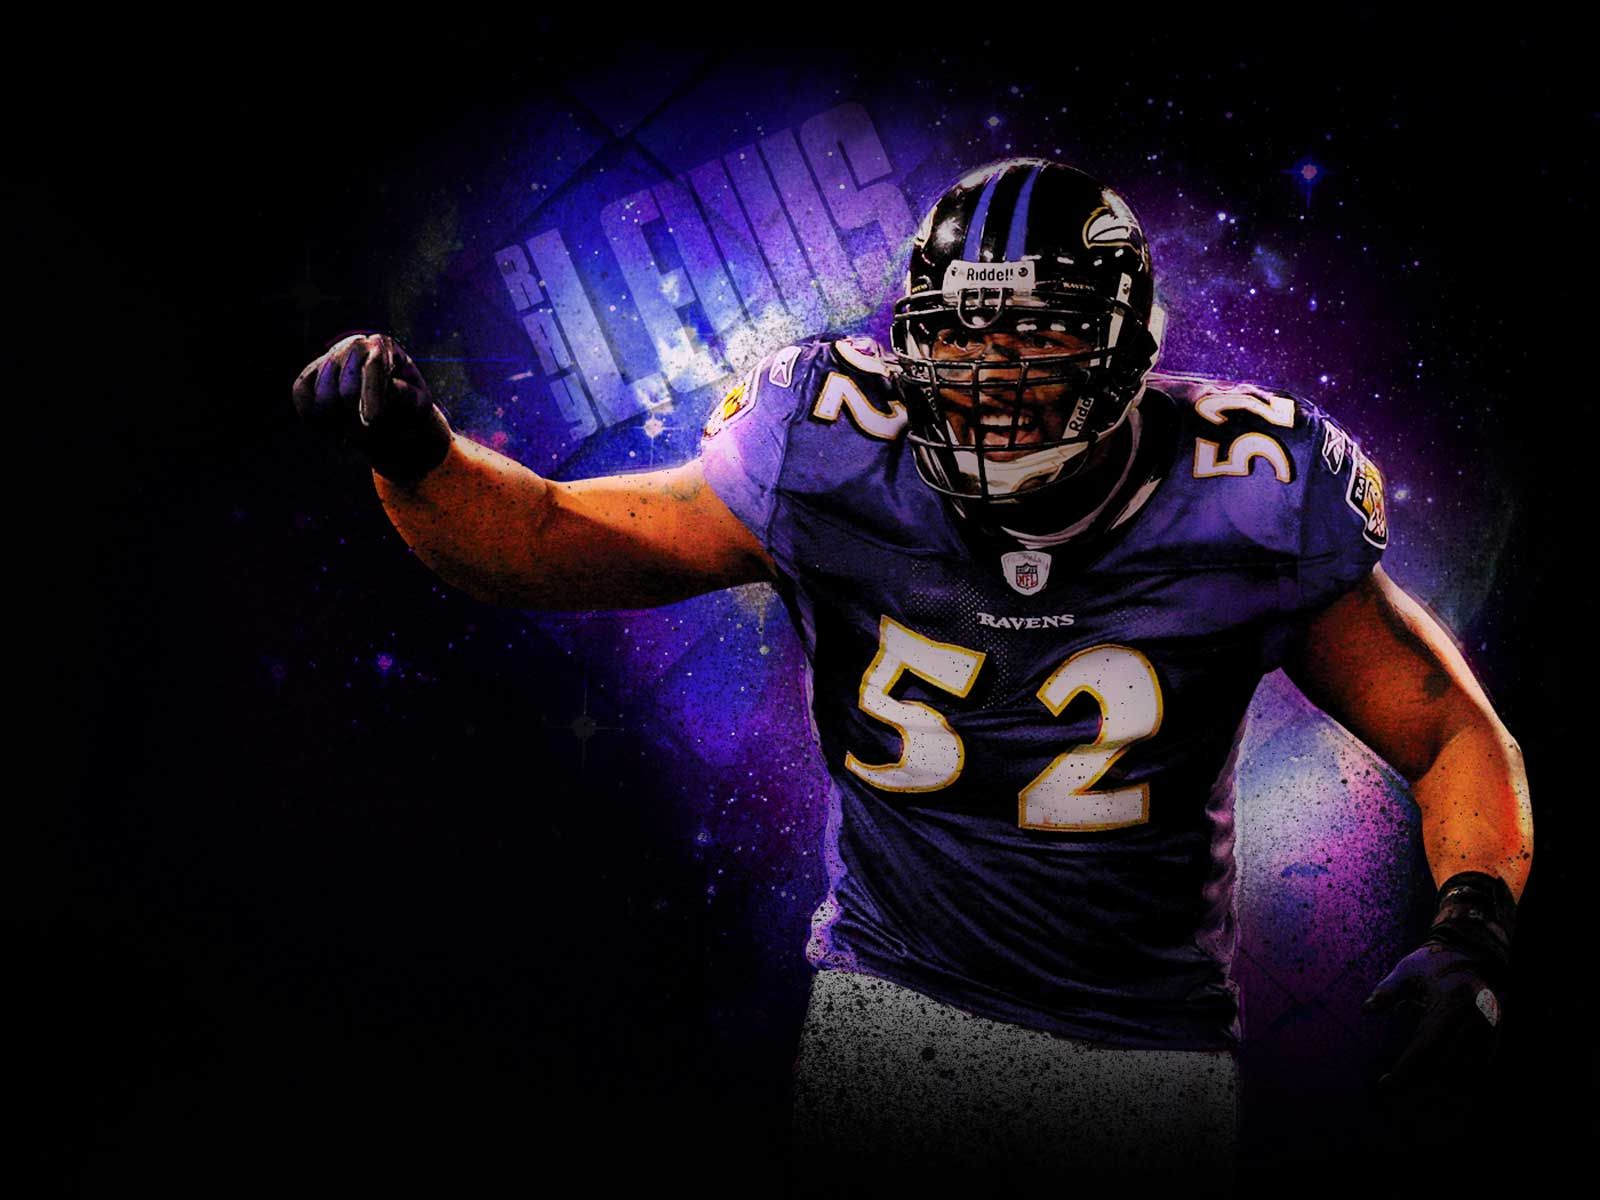 Wallpapers By Wicked Shadows: Baltimore Ravens Super Bowl XLVII ...